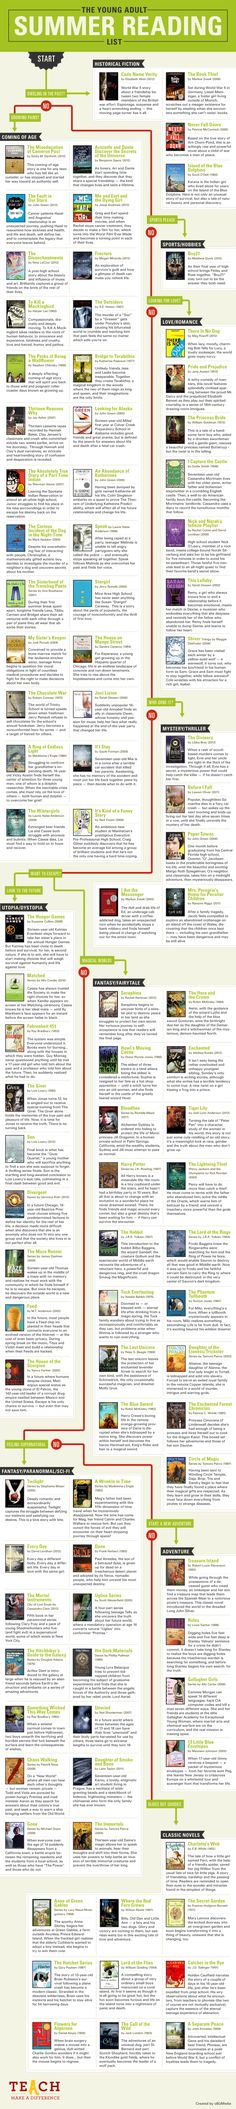 The Young Adult Summer Reading List